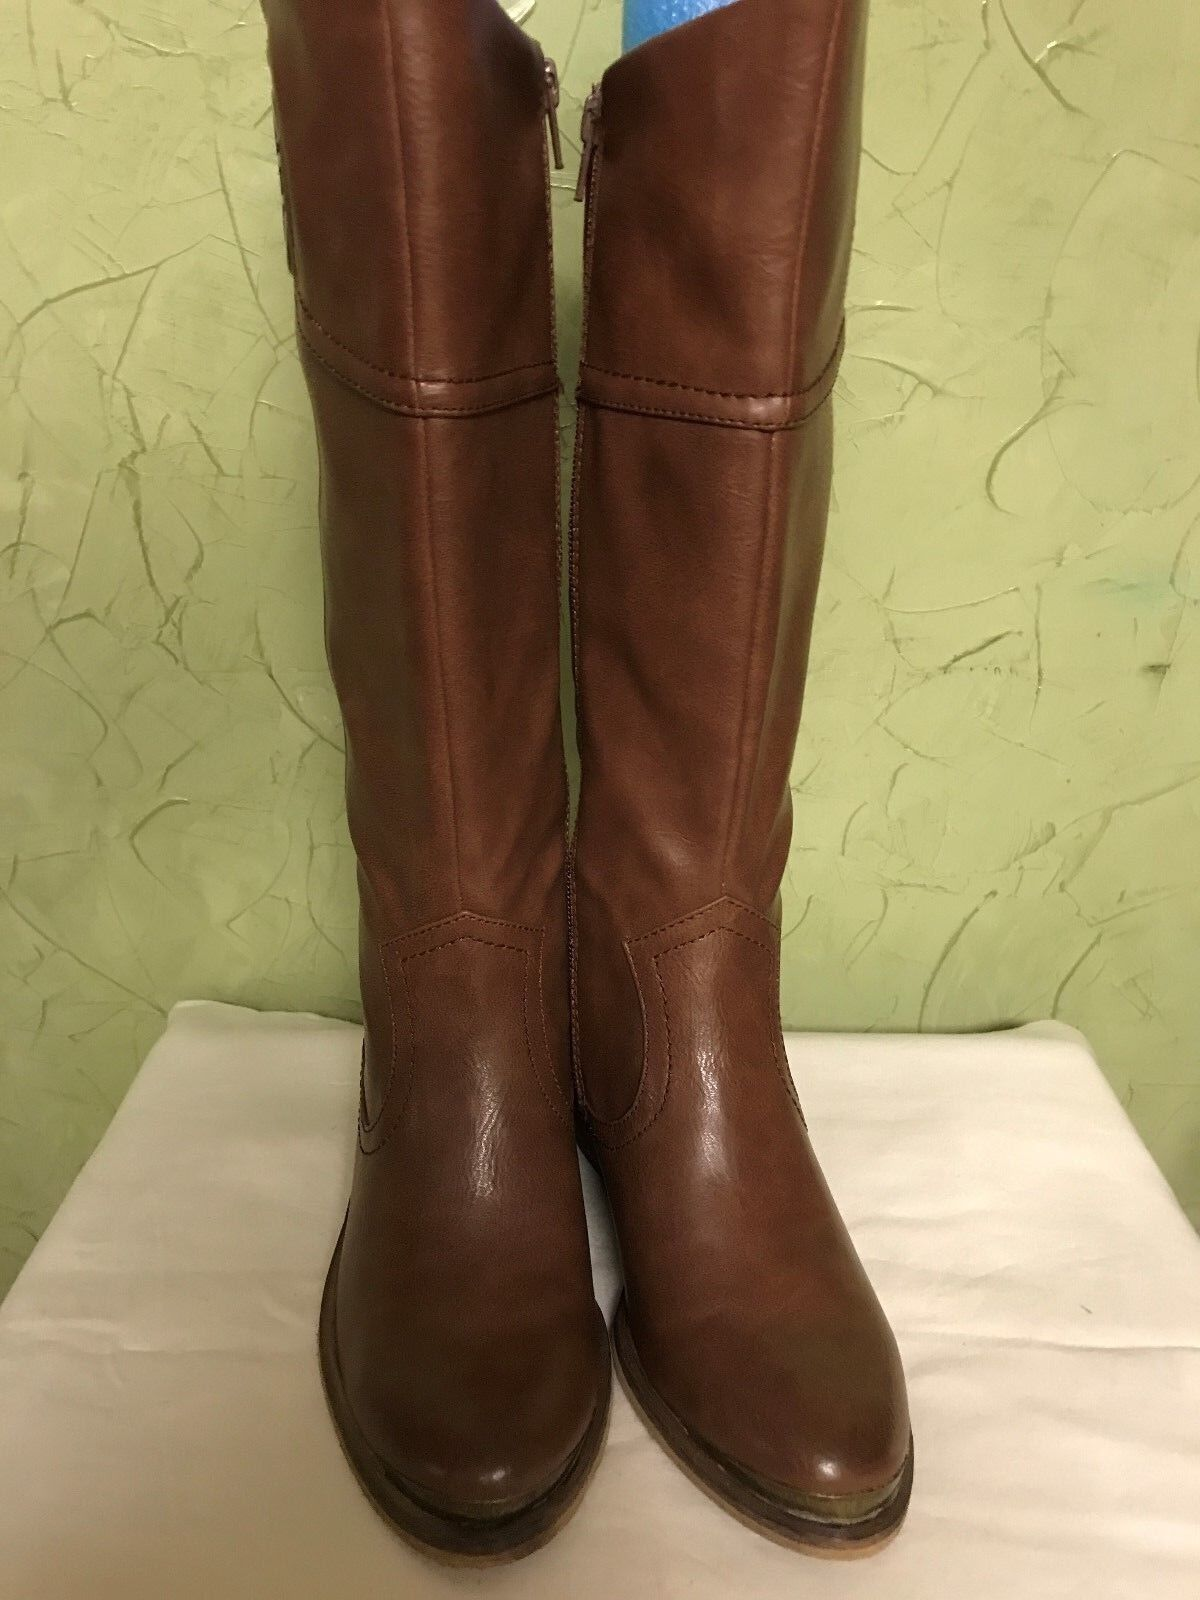 NWB Bare Traps Taupe Brown knee high ladies boots metal sz 5 M accent metal boots on toe c859bc